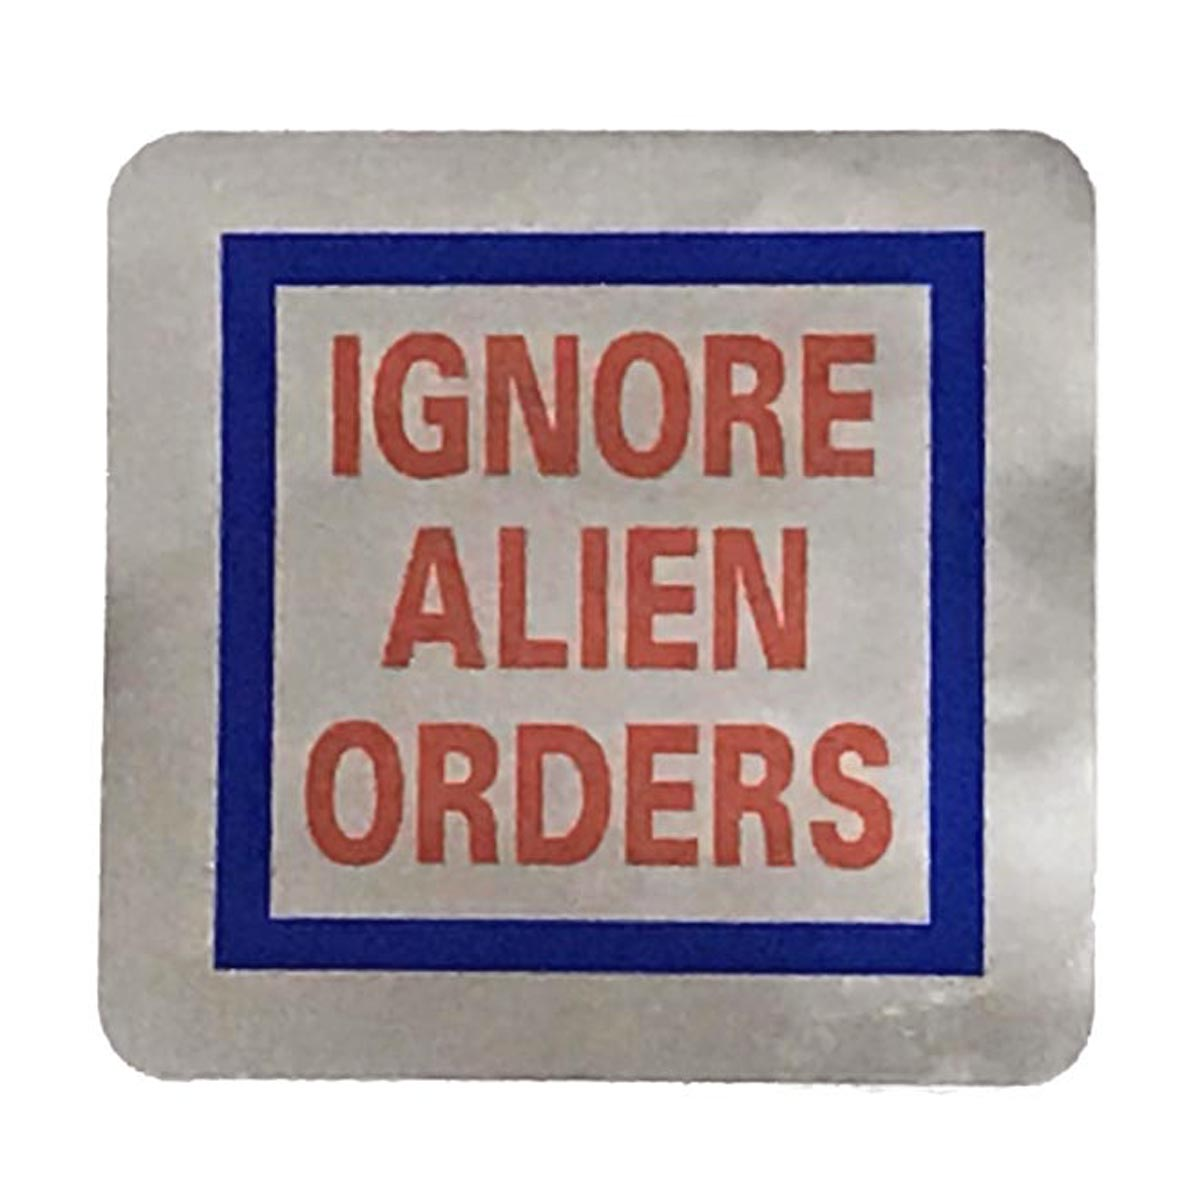 Joe Strummer / Clash Replica Ignore Alien Orders Decal / Sticker